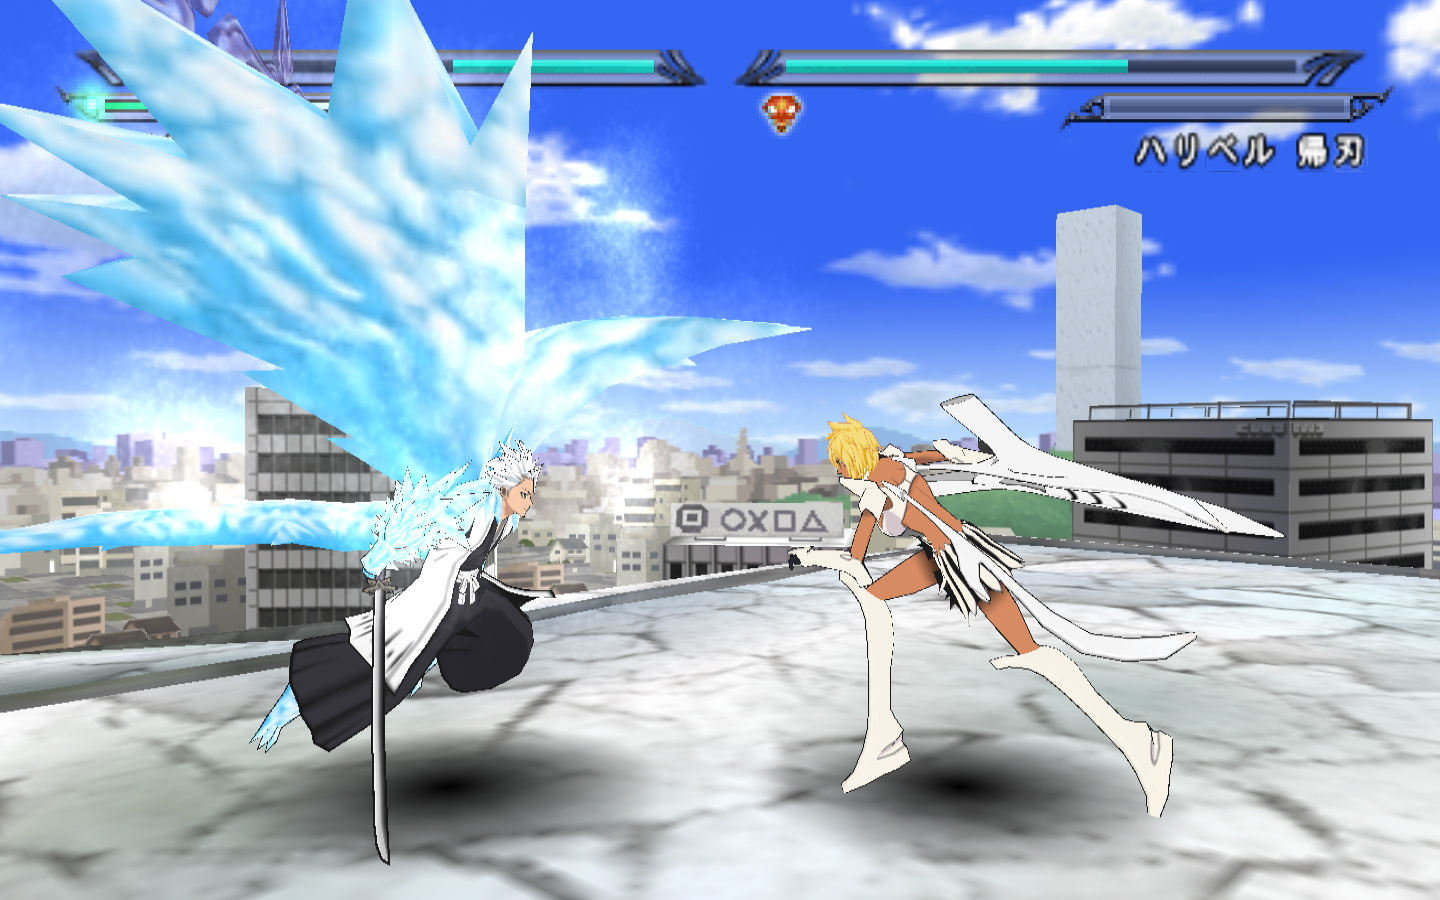 Bleach Ppsspp Games Free Download